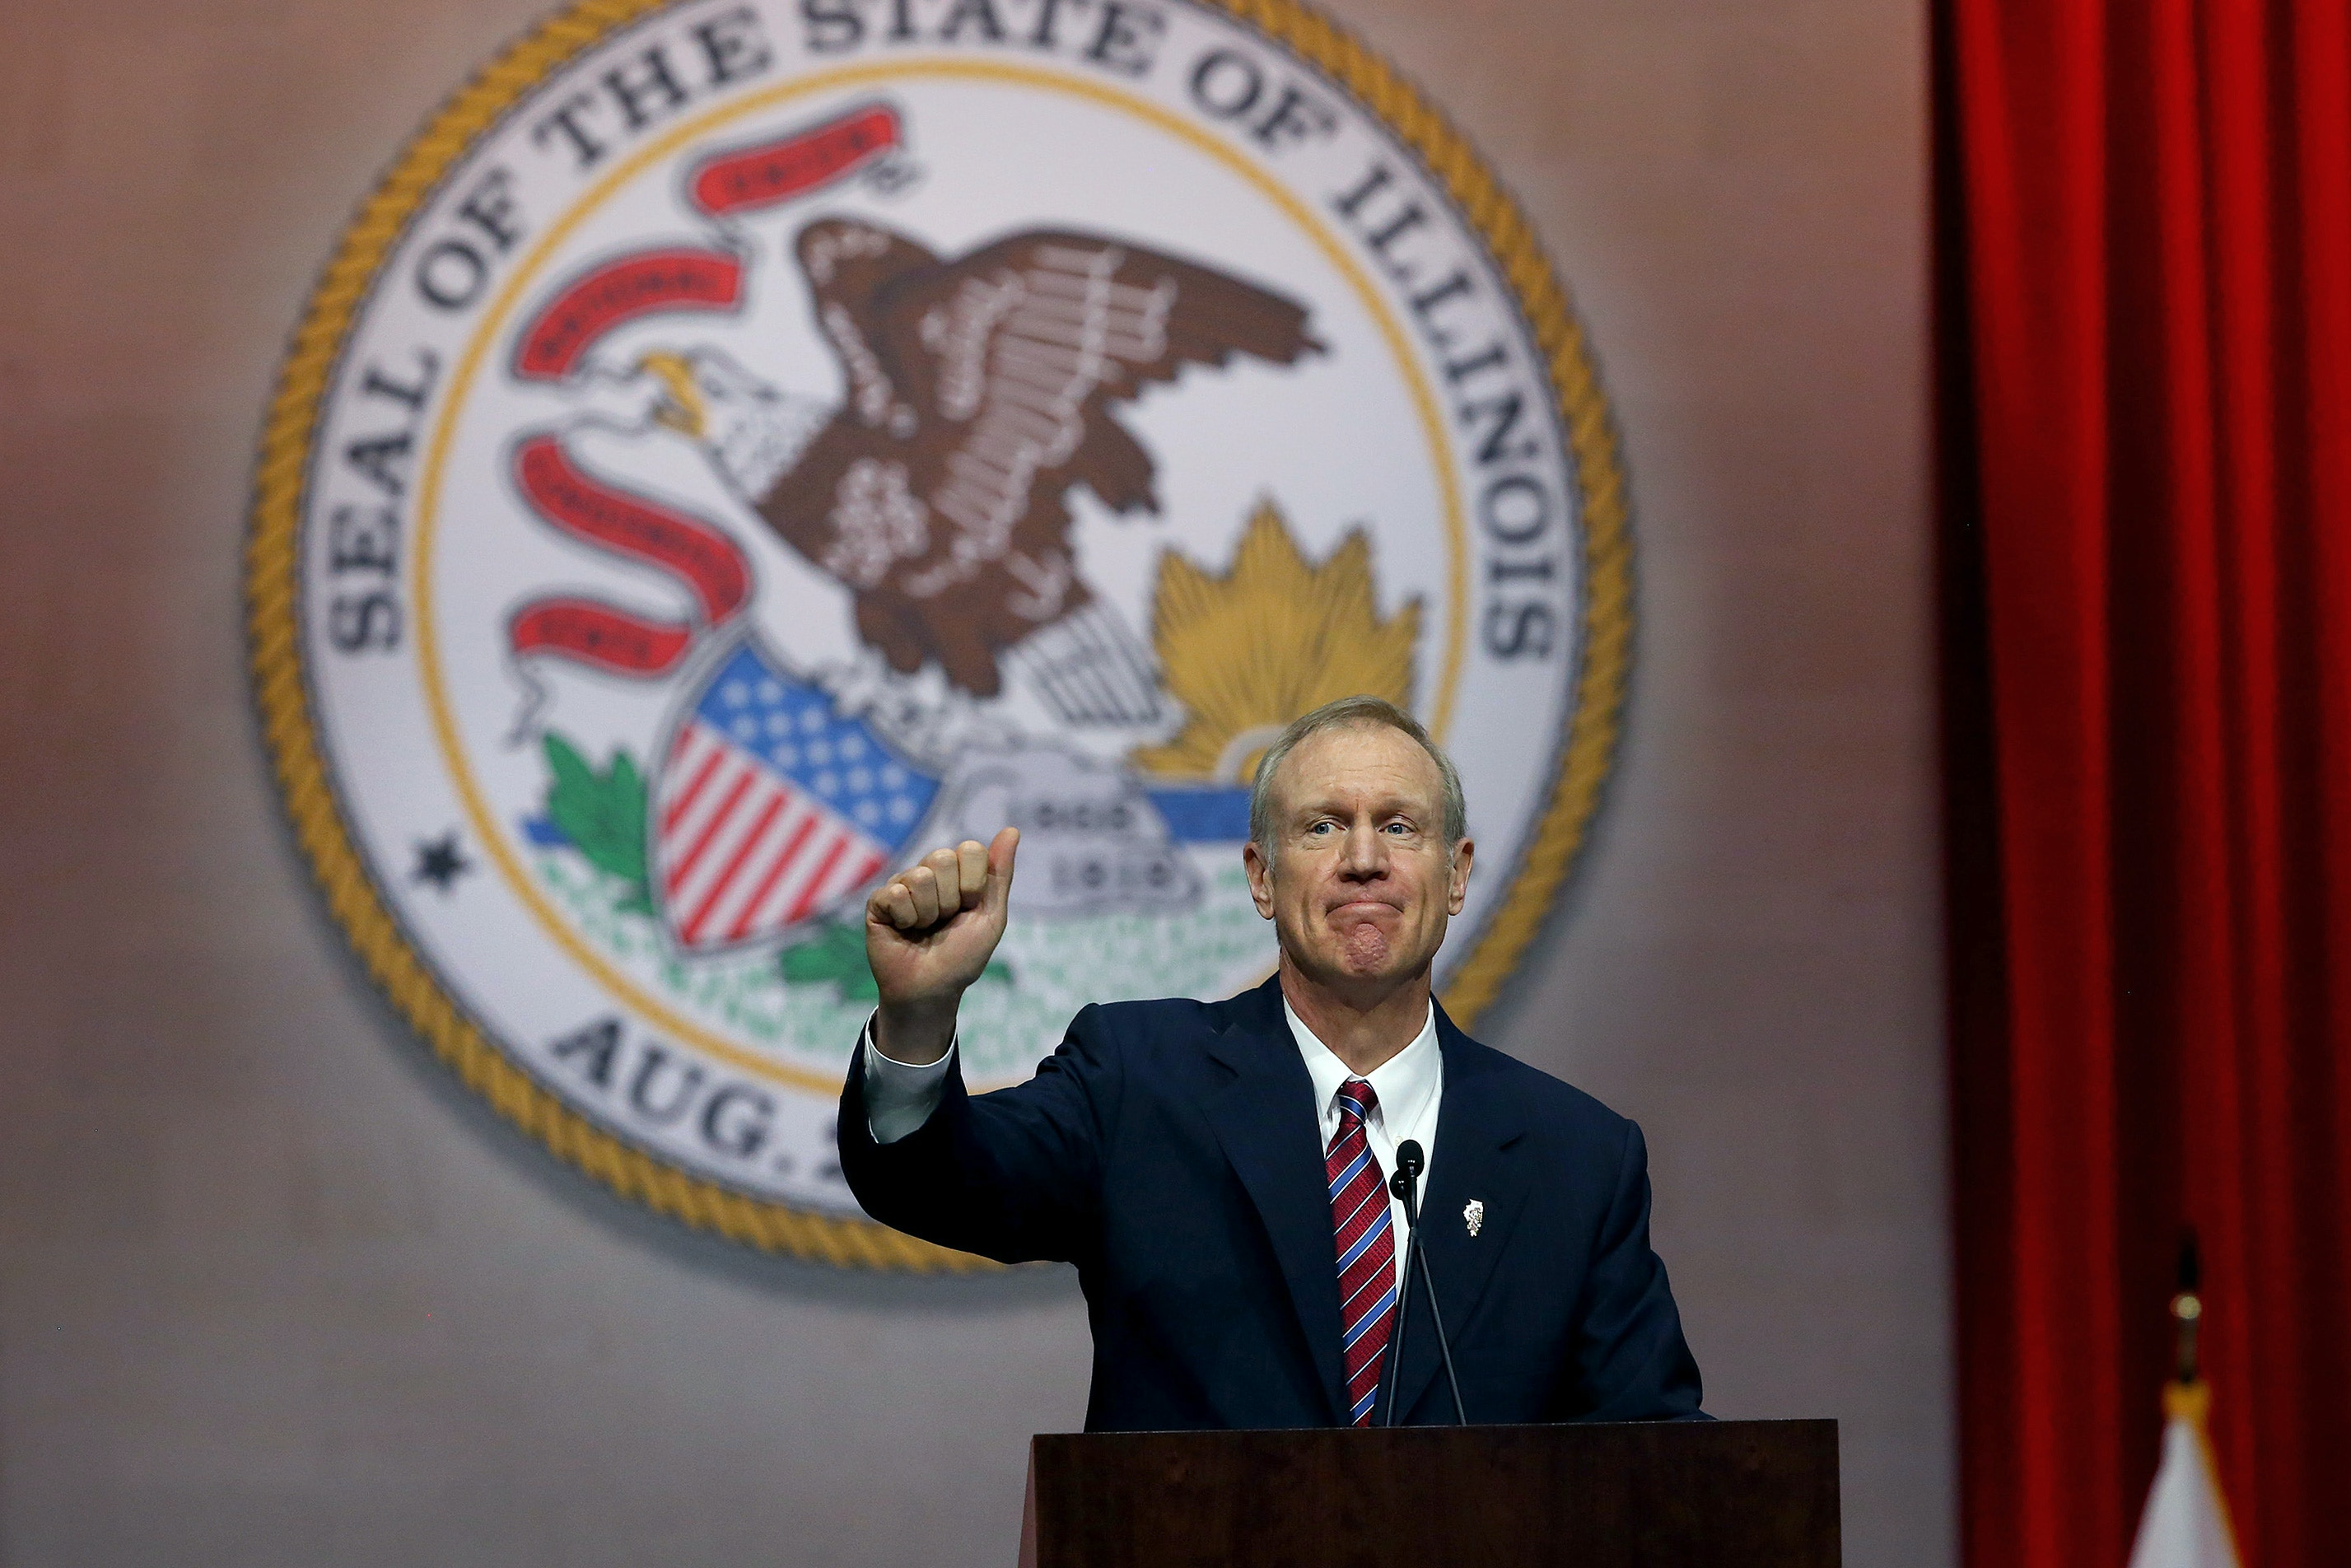 Gov. Bruce Rauner gives a thumbs up after giving his first speech as governor on Monday Jan. 12, 2015 at the Prairie Capital Convention Center in Springfield, Ill. (Nancy Stone/Chicago Tribune/TNS via Getty Images)